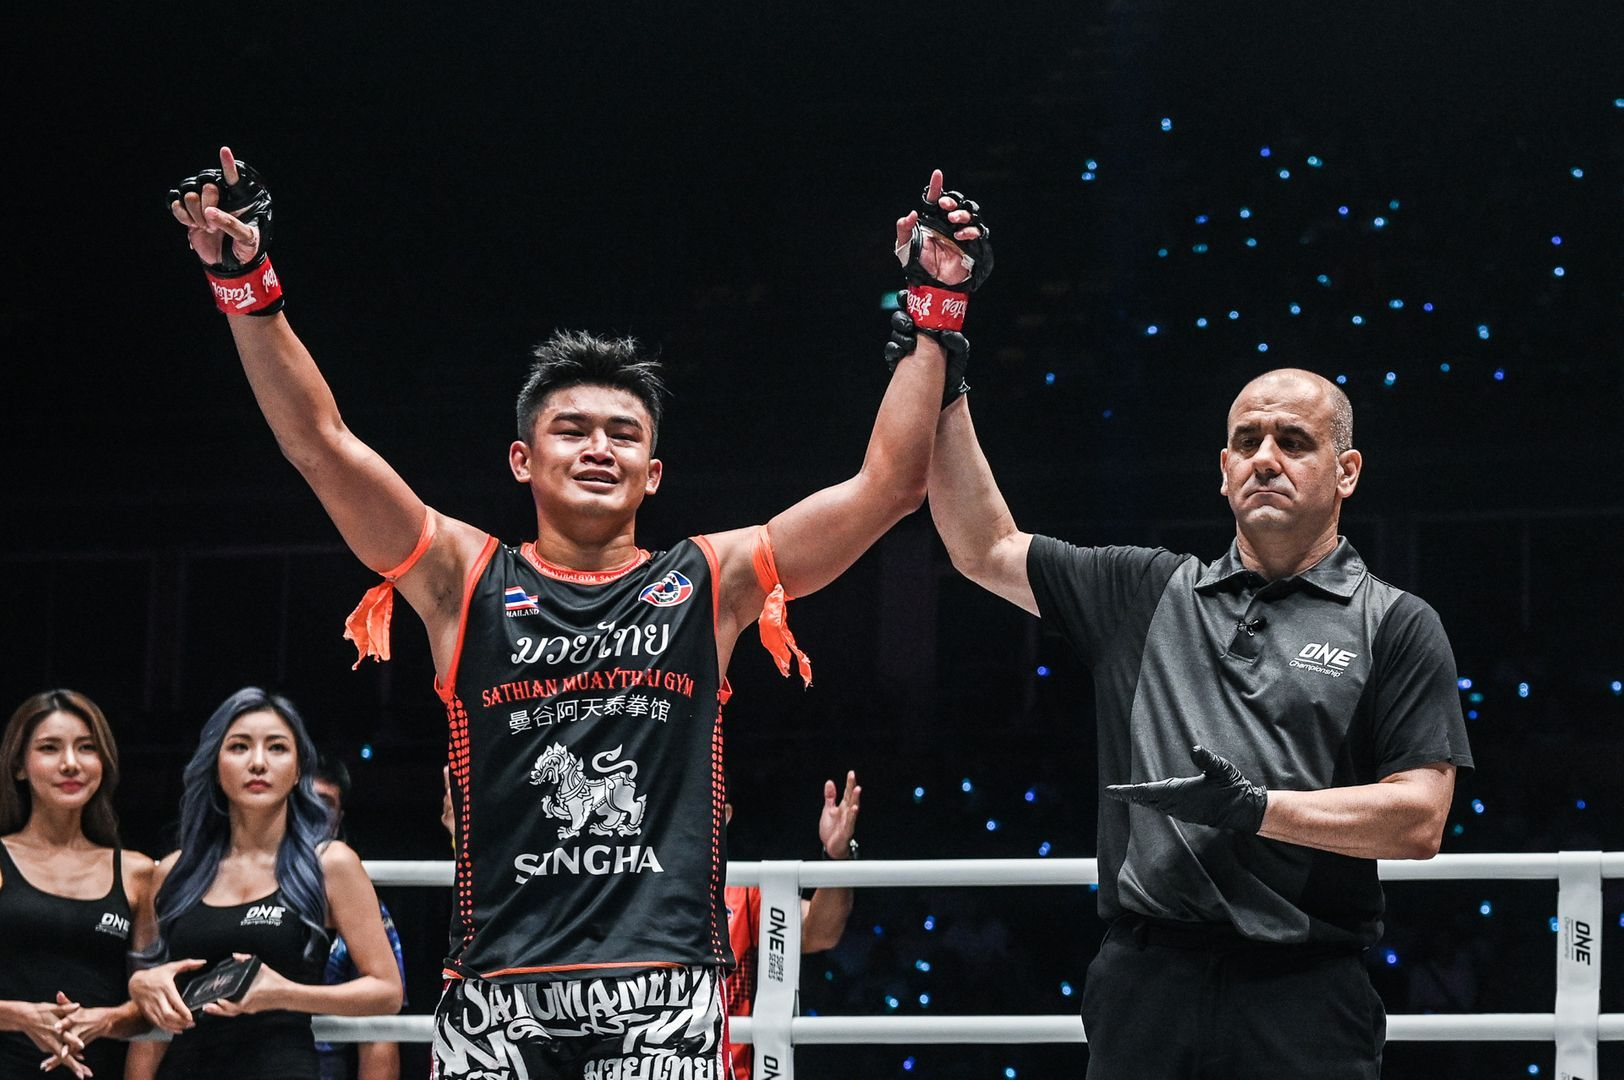 Sangmanee Sathian MuayThai defeats Kenta Yamada at ONE A NEW TOMORROW